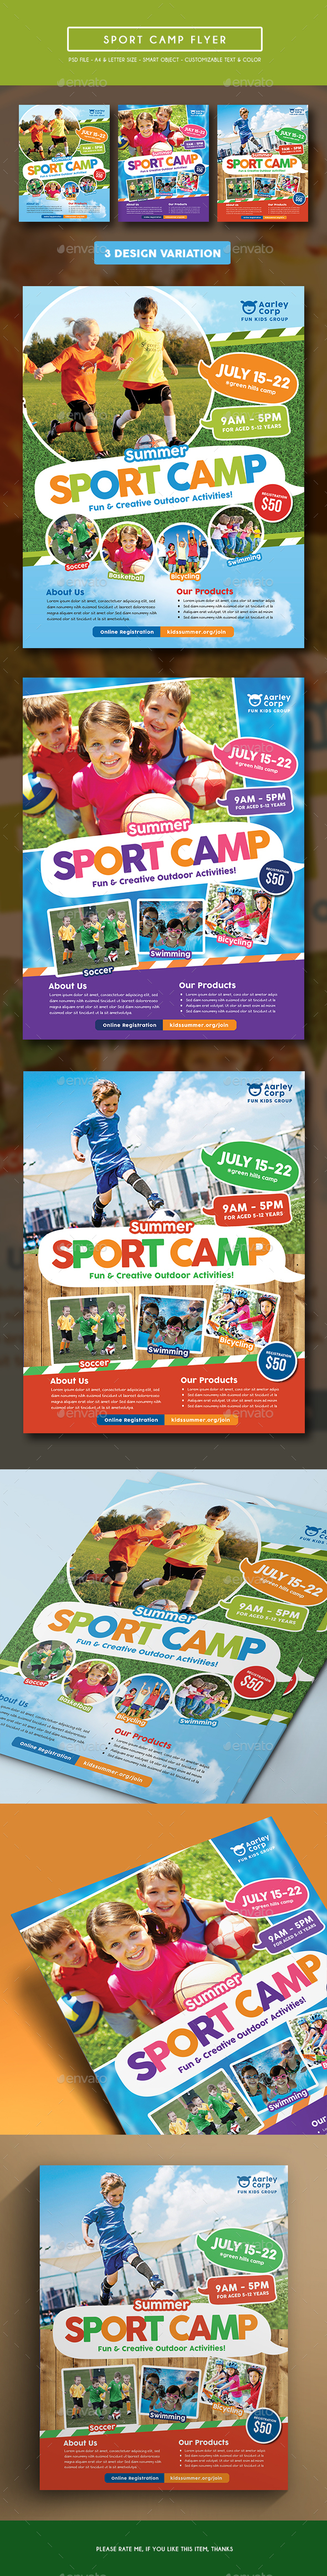 Sport Camp Flyer - Corporate Flyers